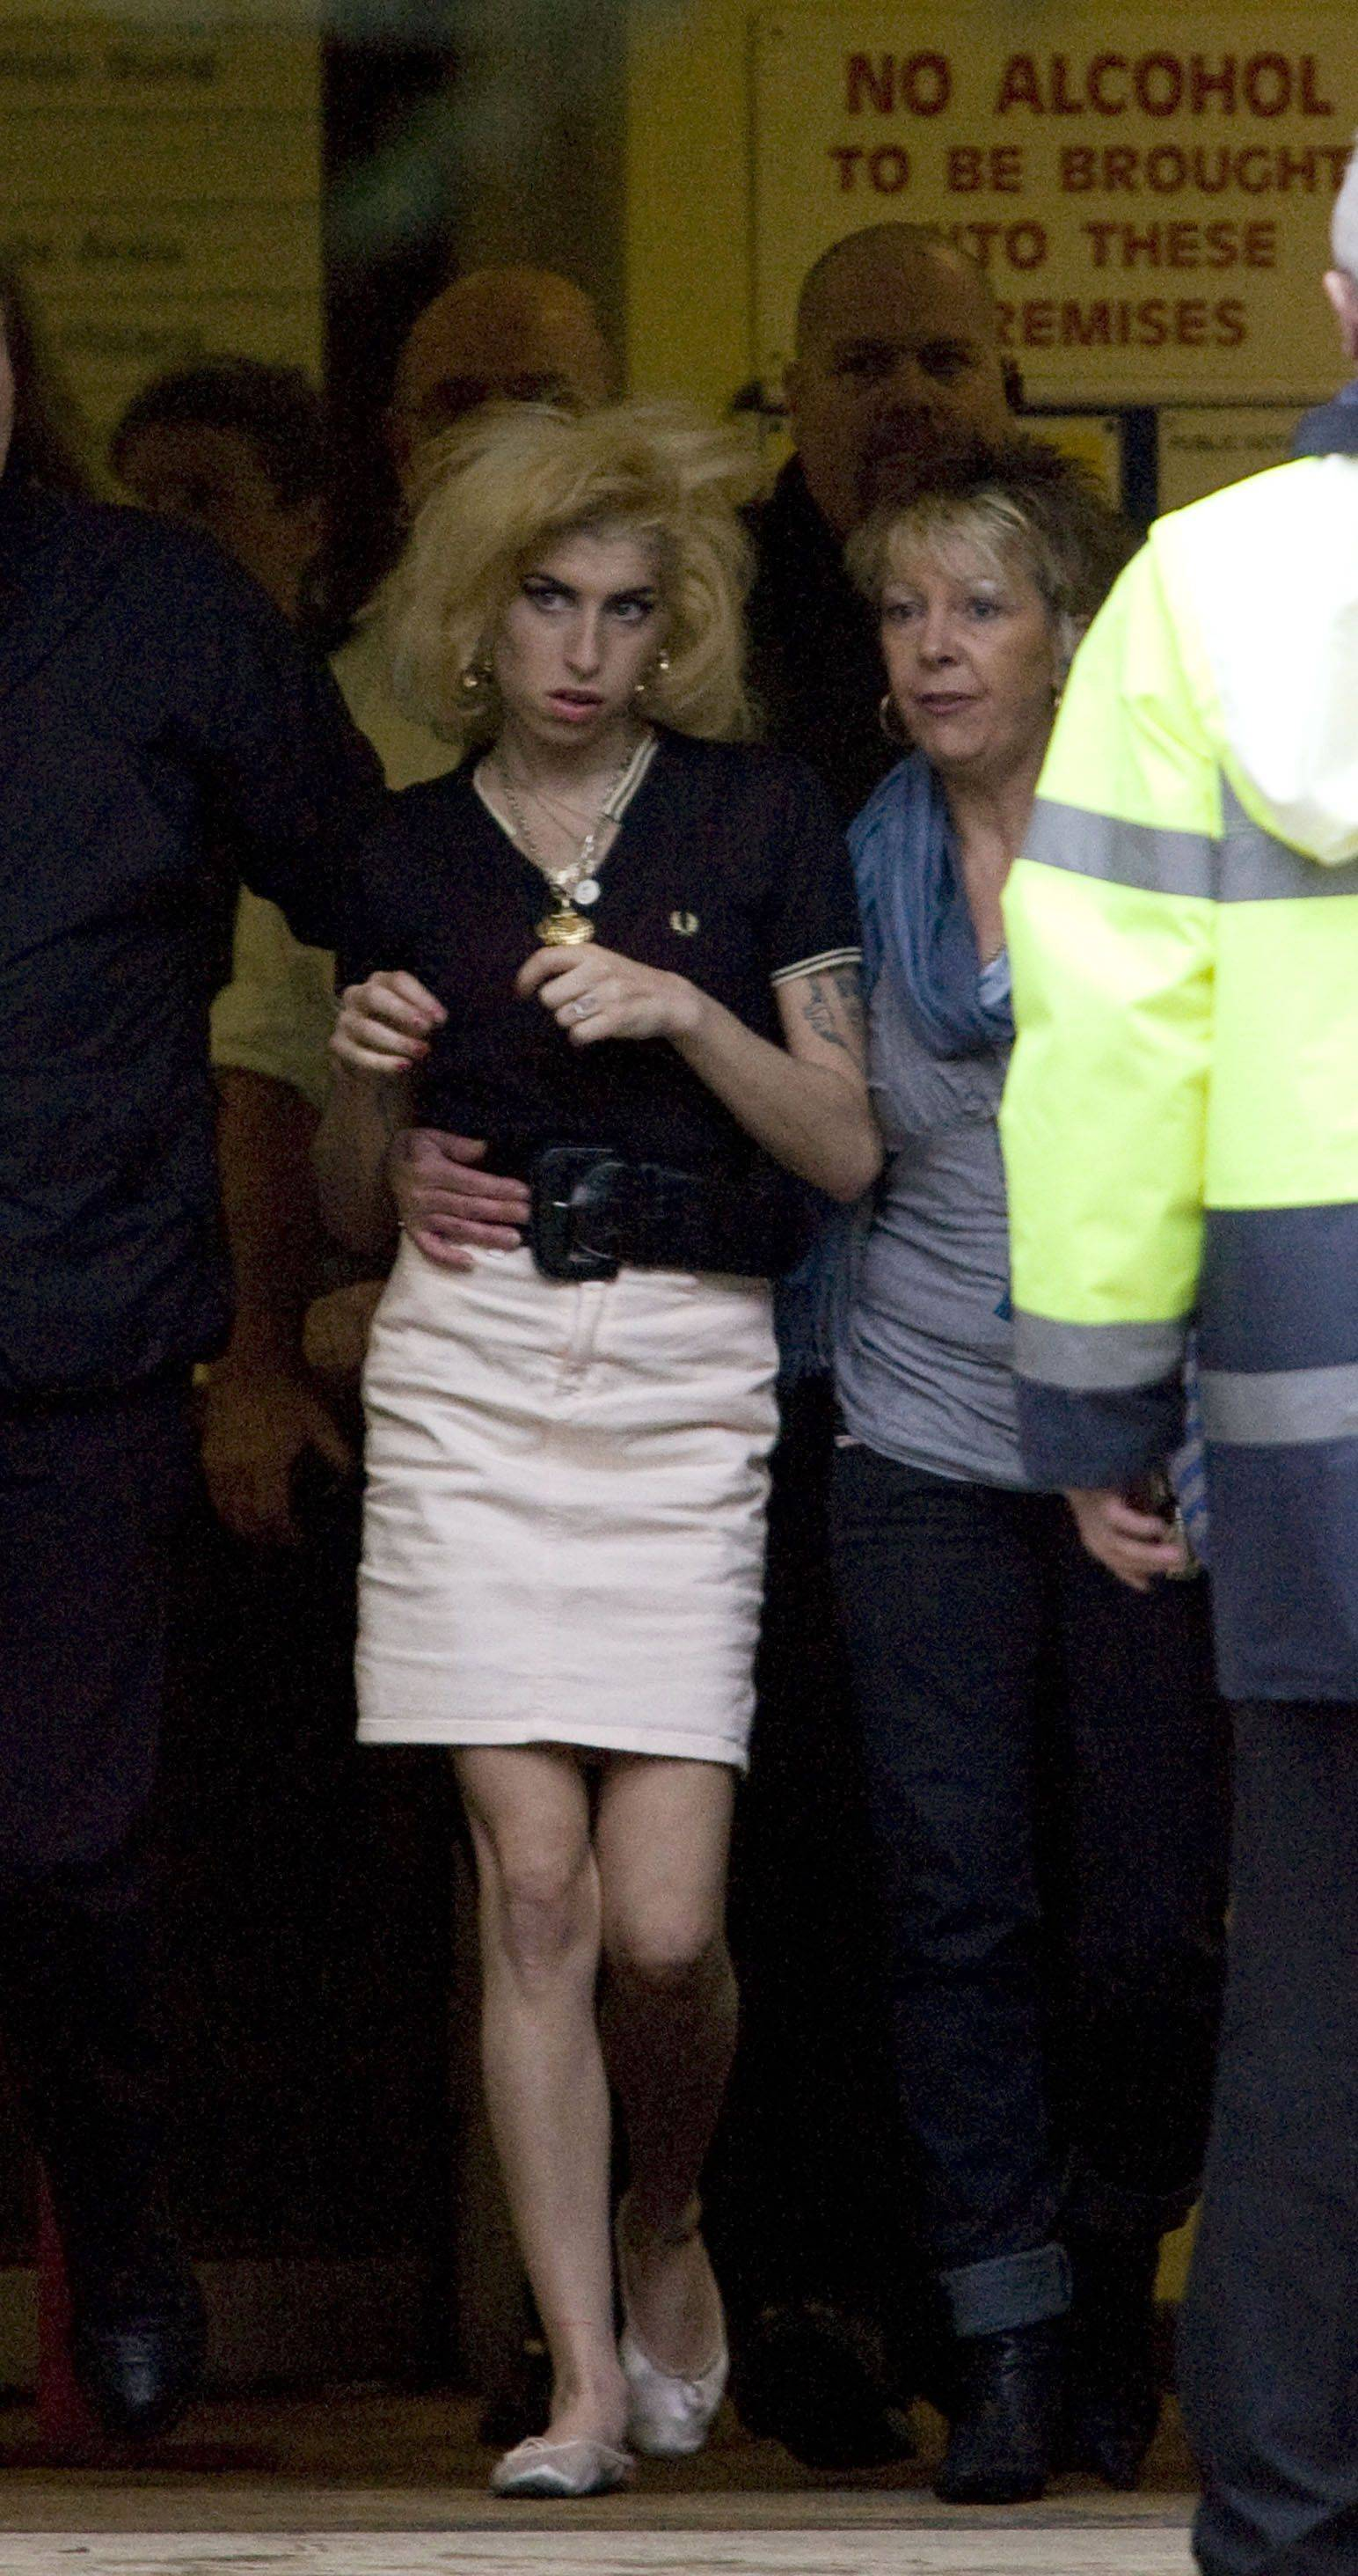 Amy Winehouse, left, leaves Snaresbrook Crown Court in London with an unidentified woman after the hearing of her husband Blake Fielder-Civil in 2008. Fielder-Civil was in court charged with grievous bodily harm and preventing the course of justice.